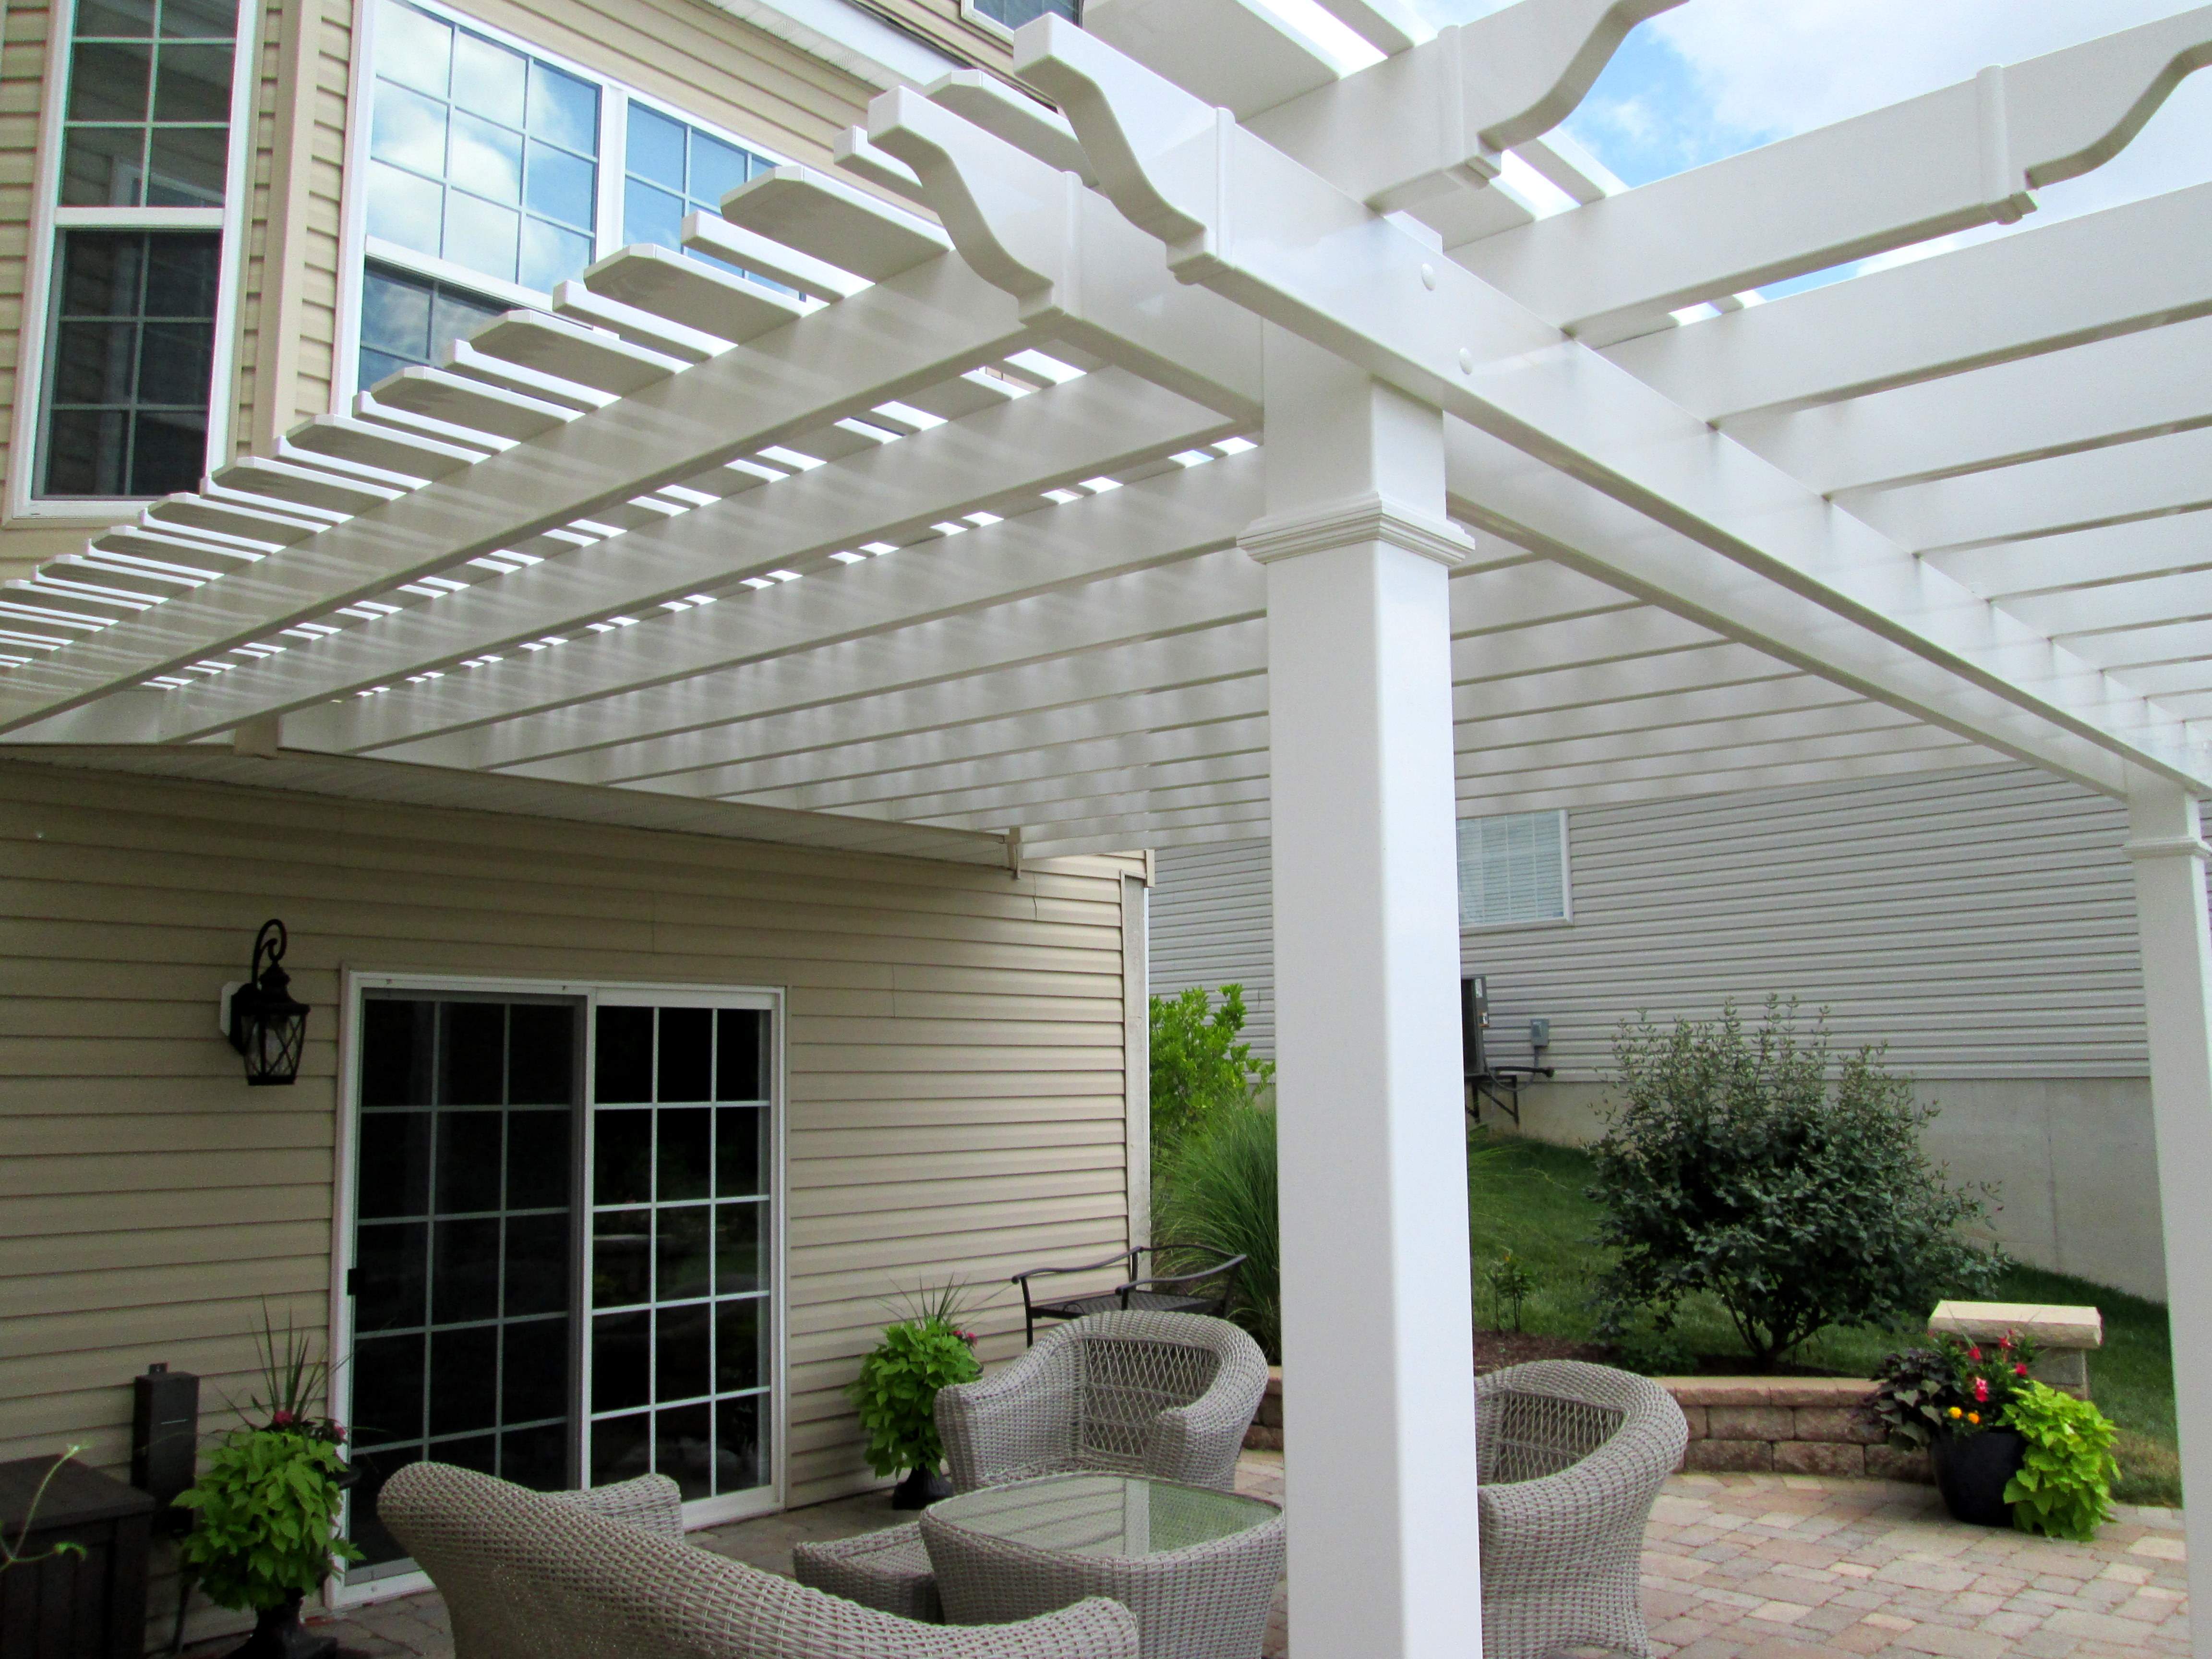 Porch Vs Deck Which Is The More Befitting For Your Home: Deck Builders St. Louis Mo